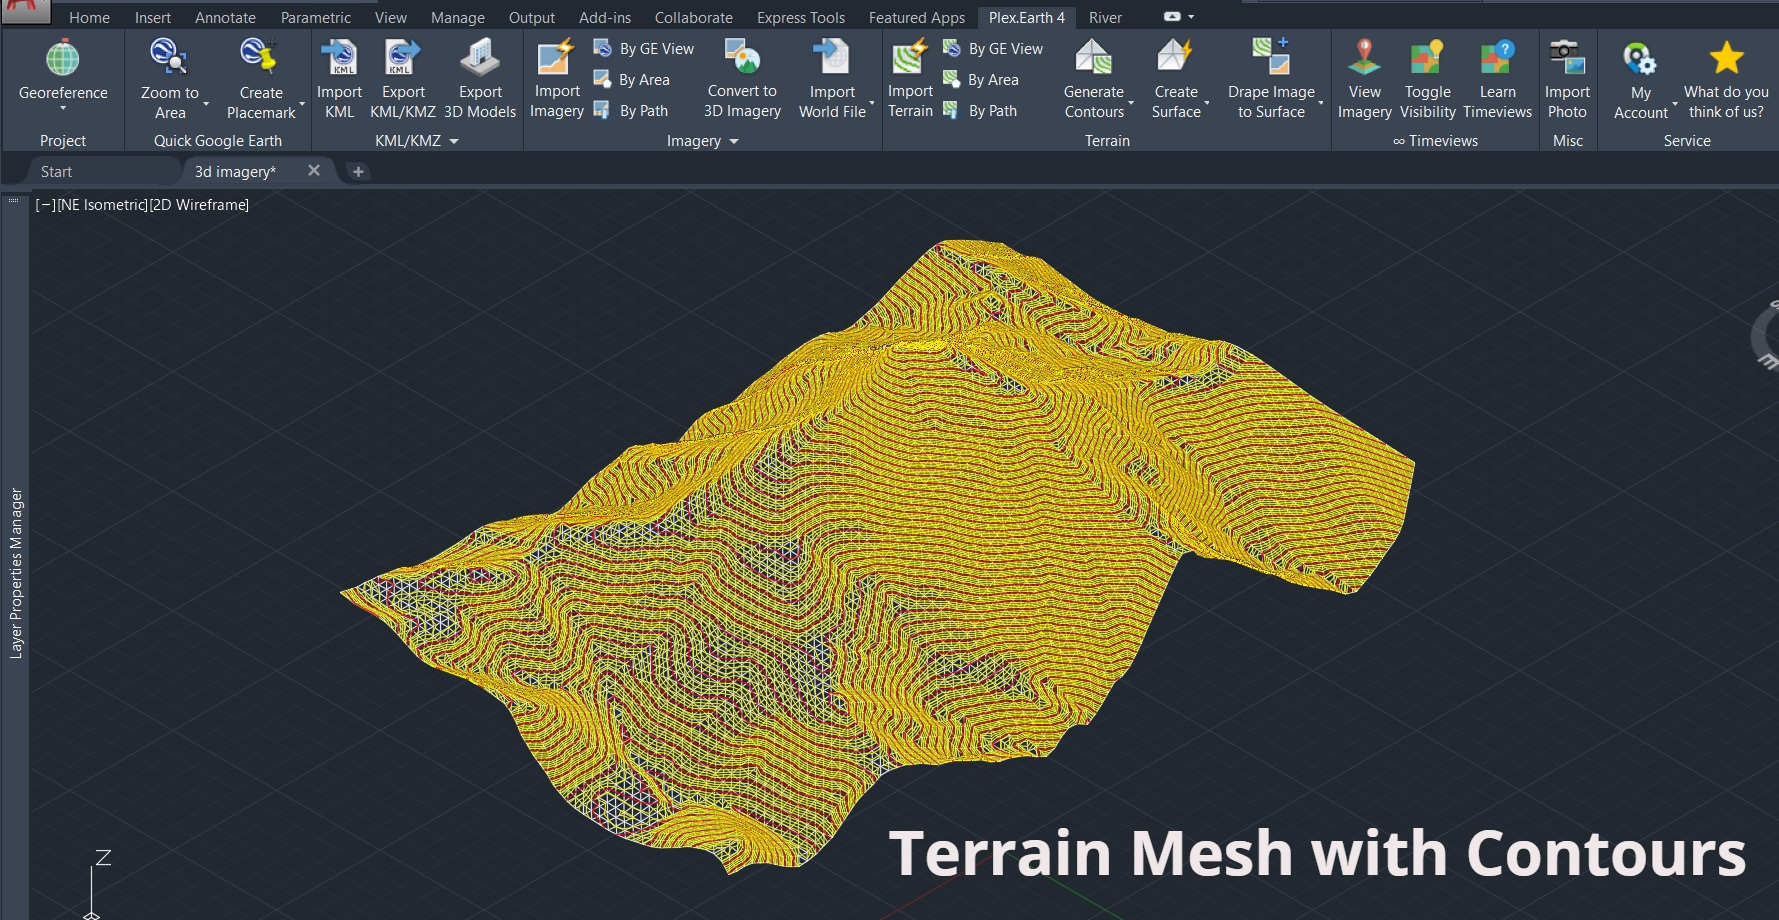 Terrain_Mesh_with_Contours.jpg